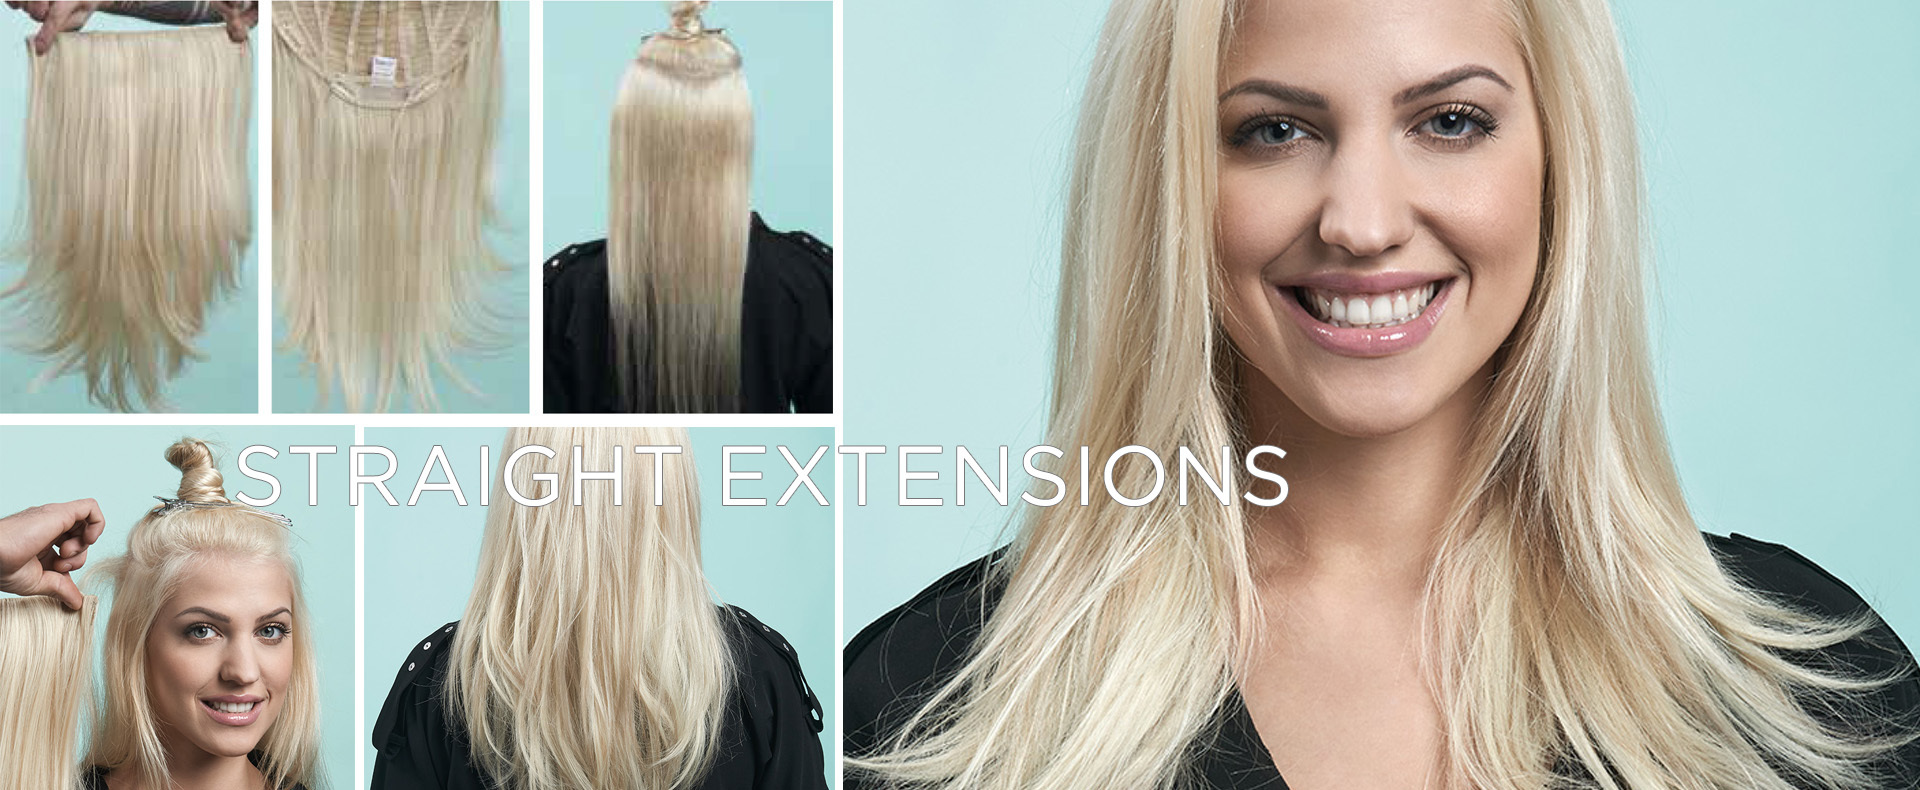 STRAIGHT EXTENSION (© Great Lengths)